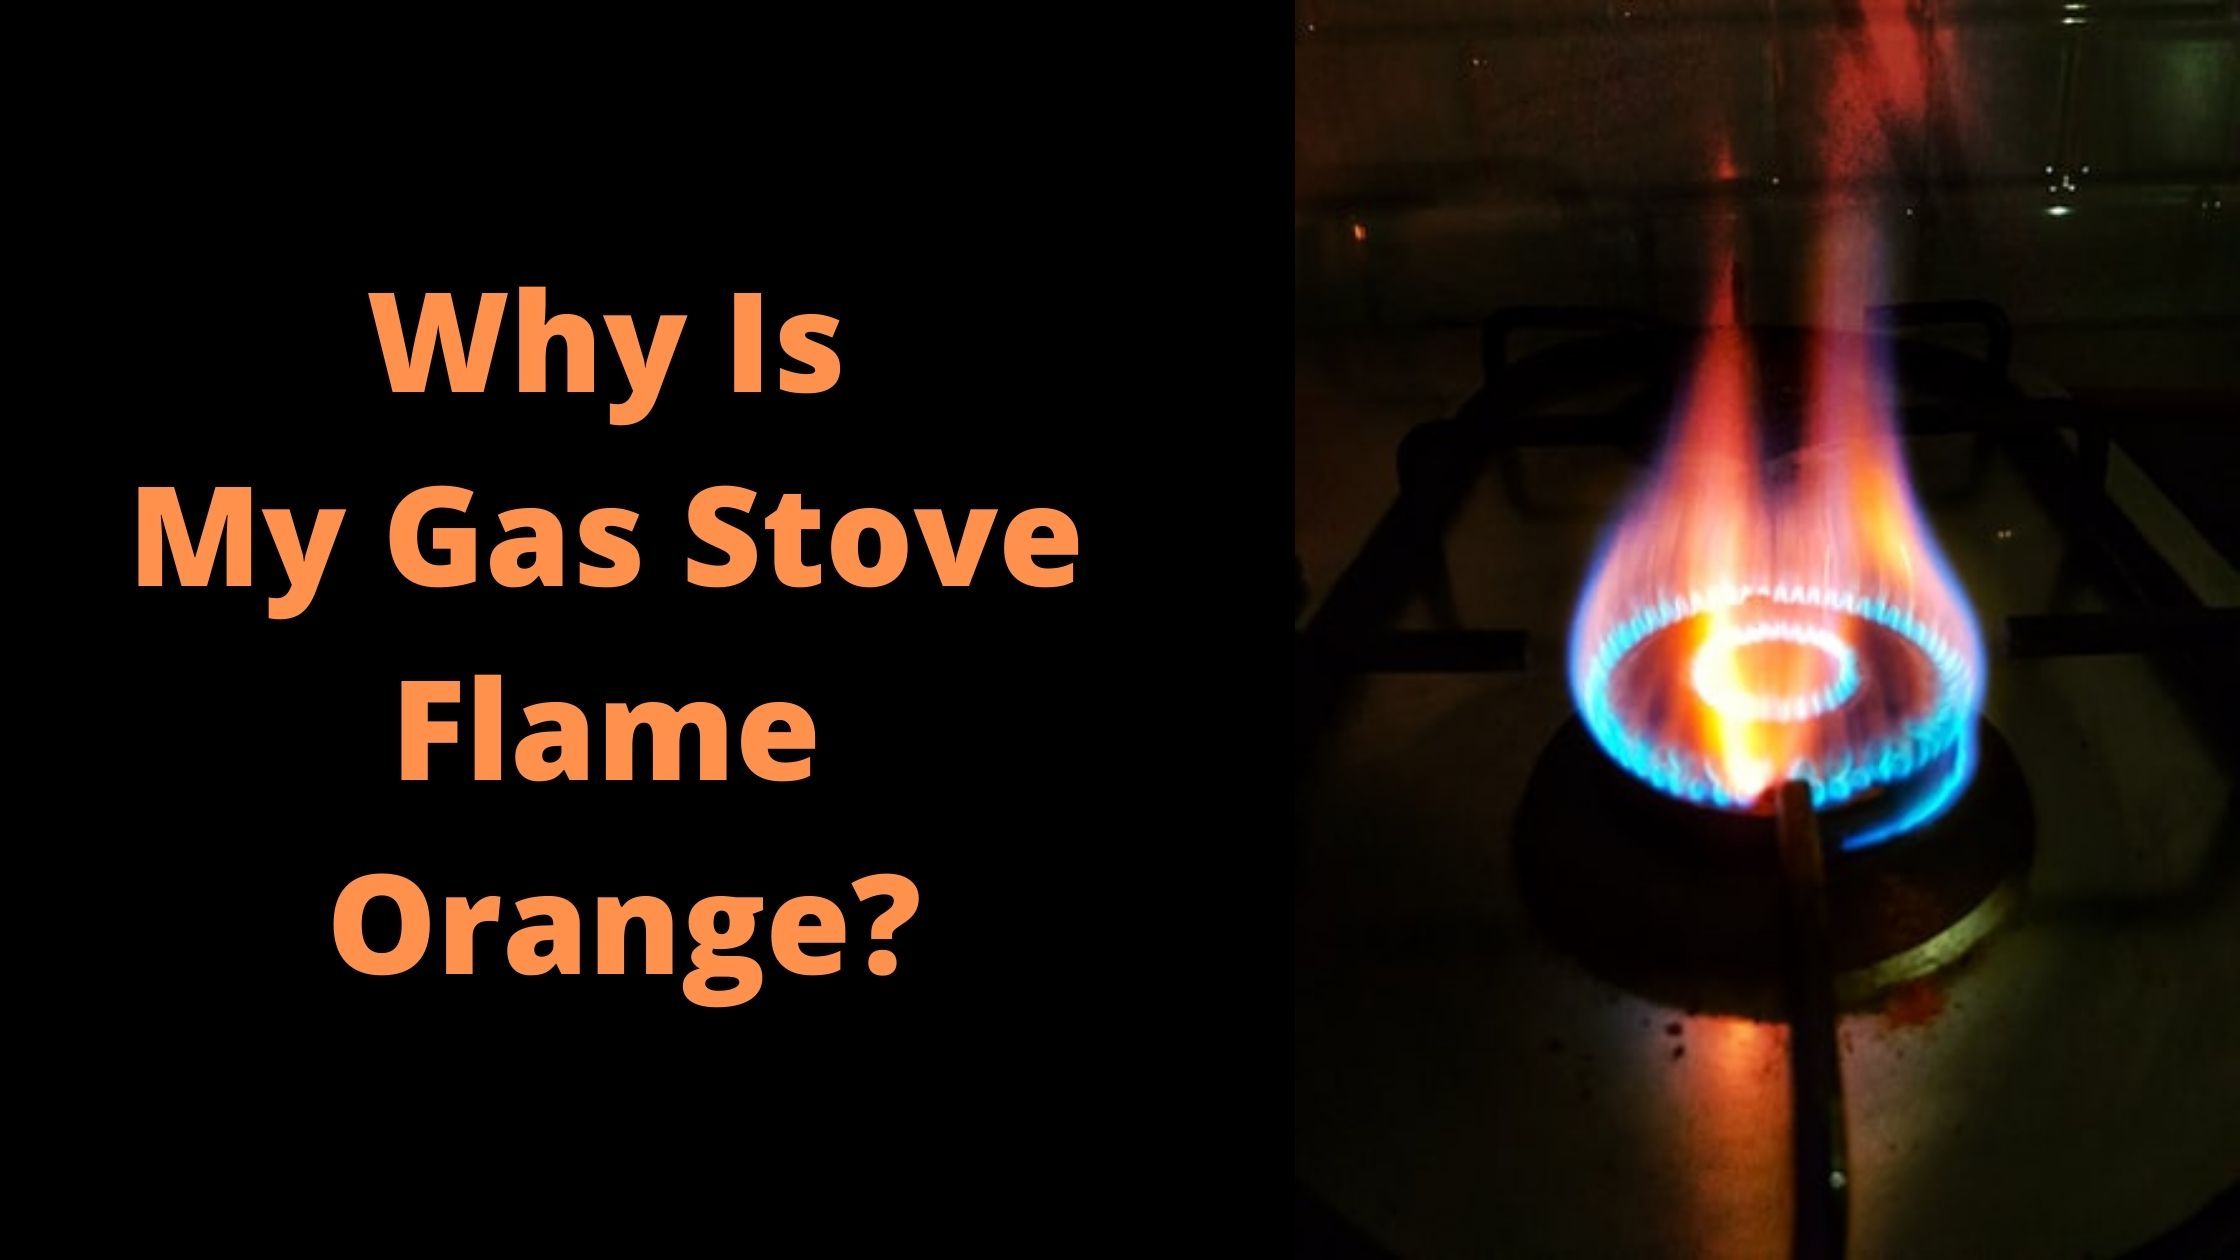 why is my gas stove flame orange